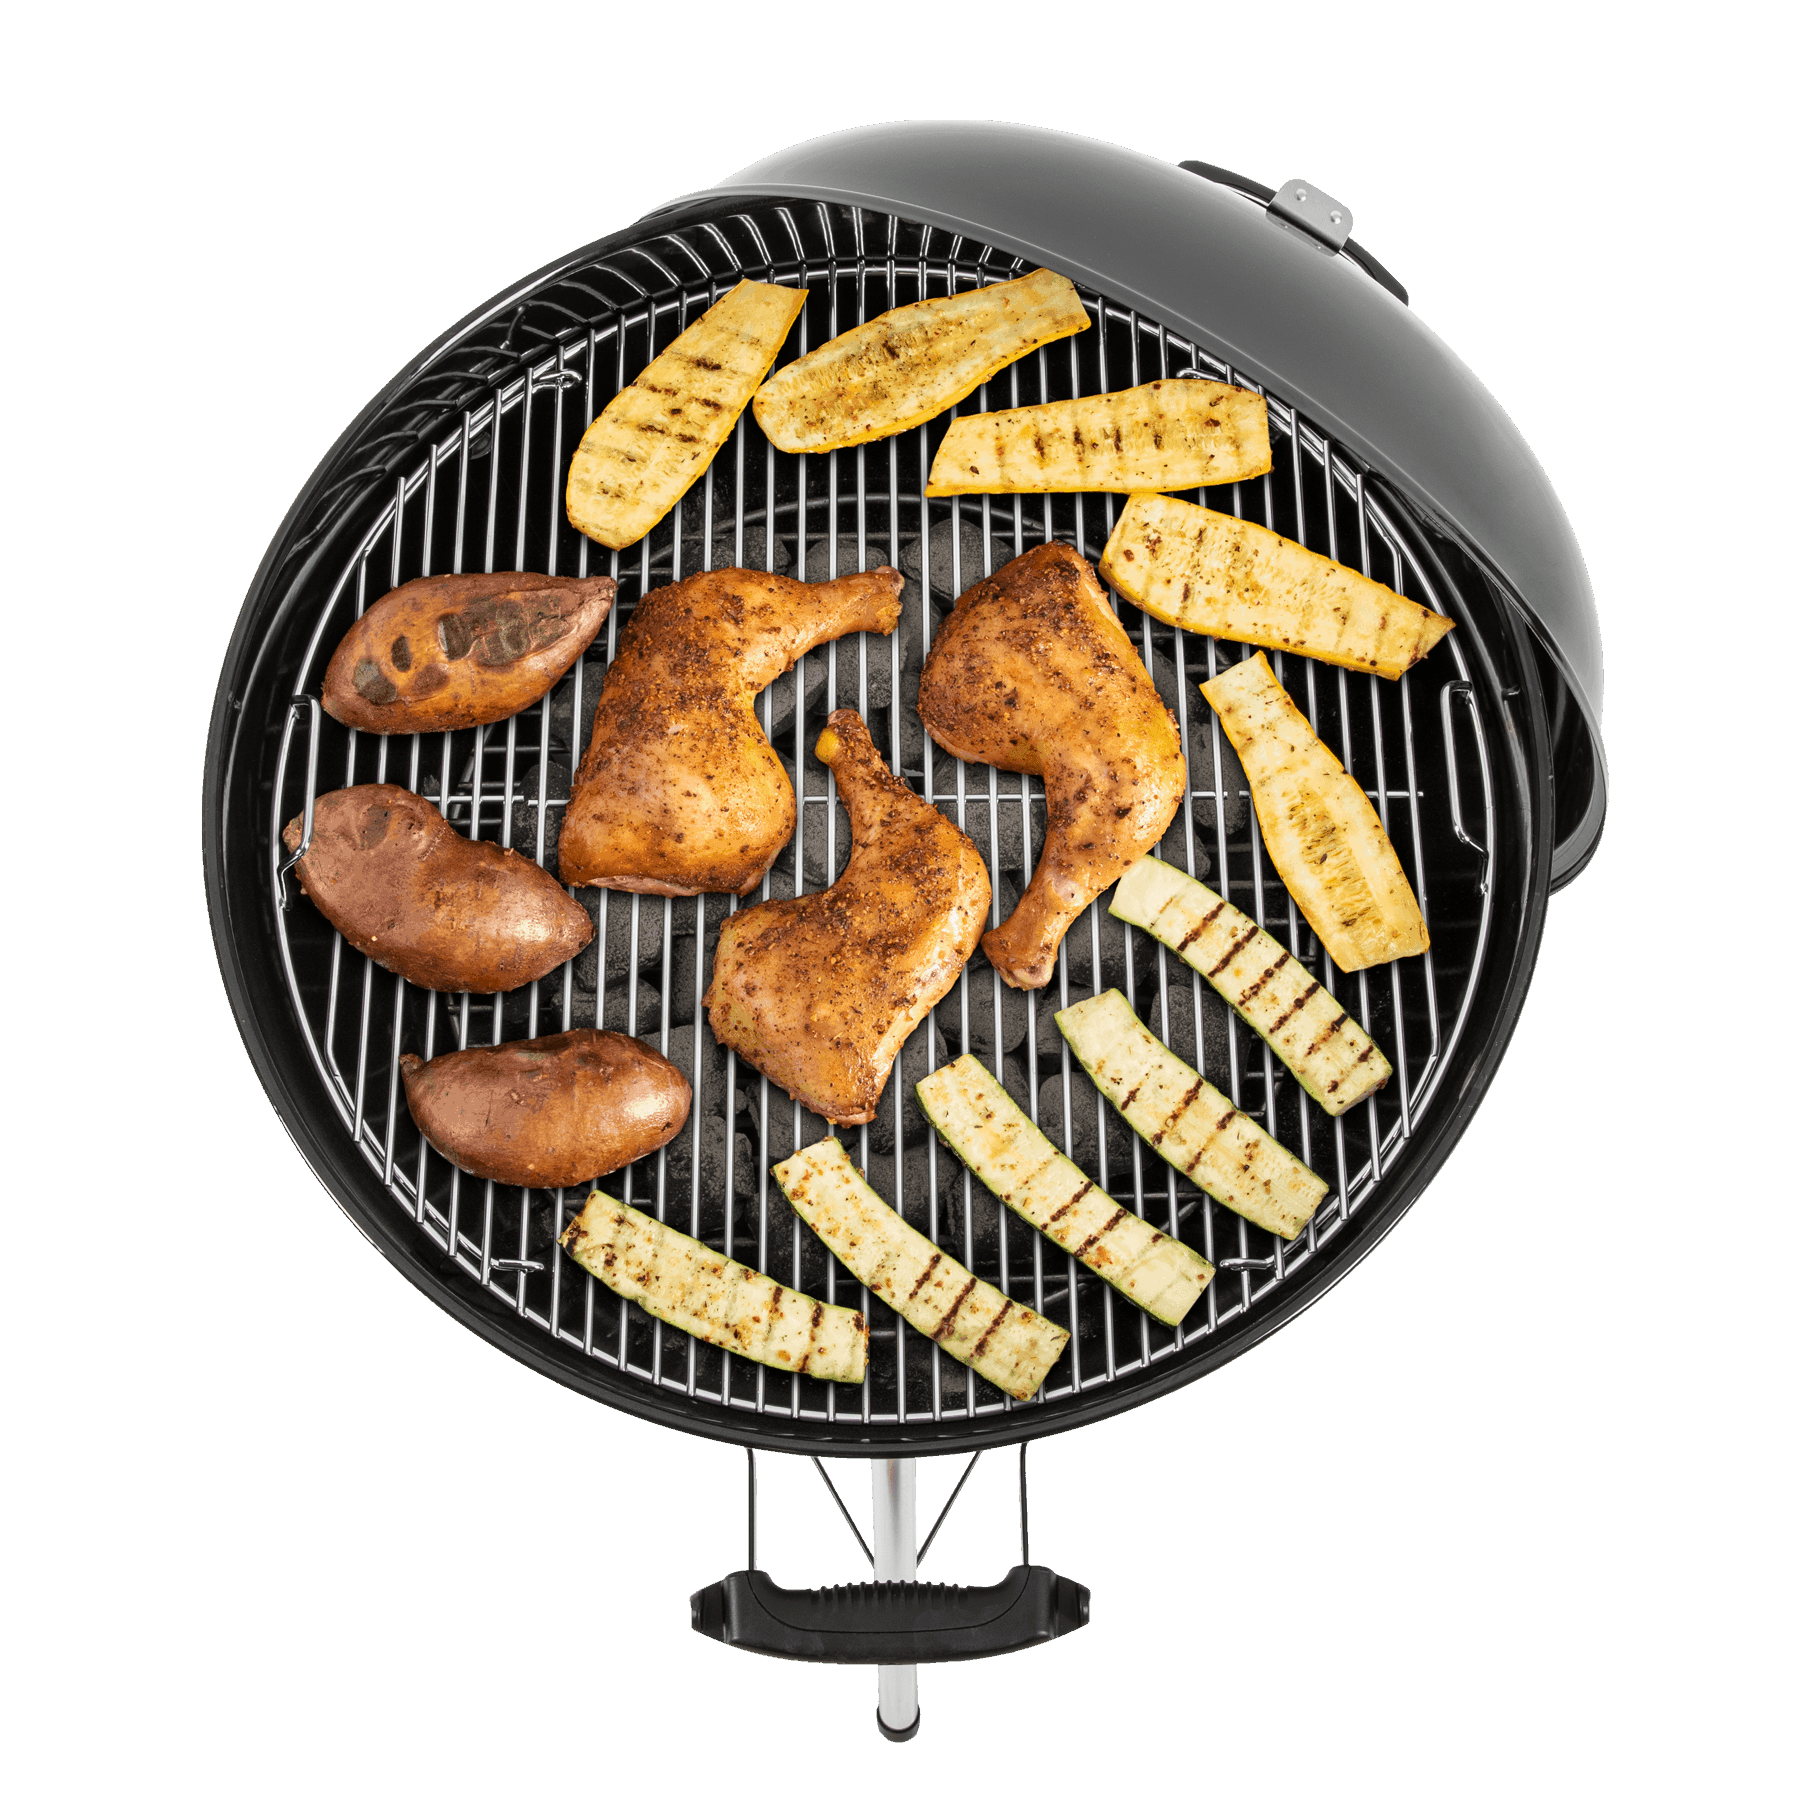 Original Kettle E-5730 Charcoal Barbecue 57 cm